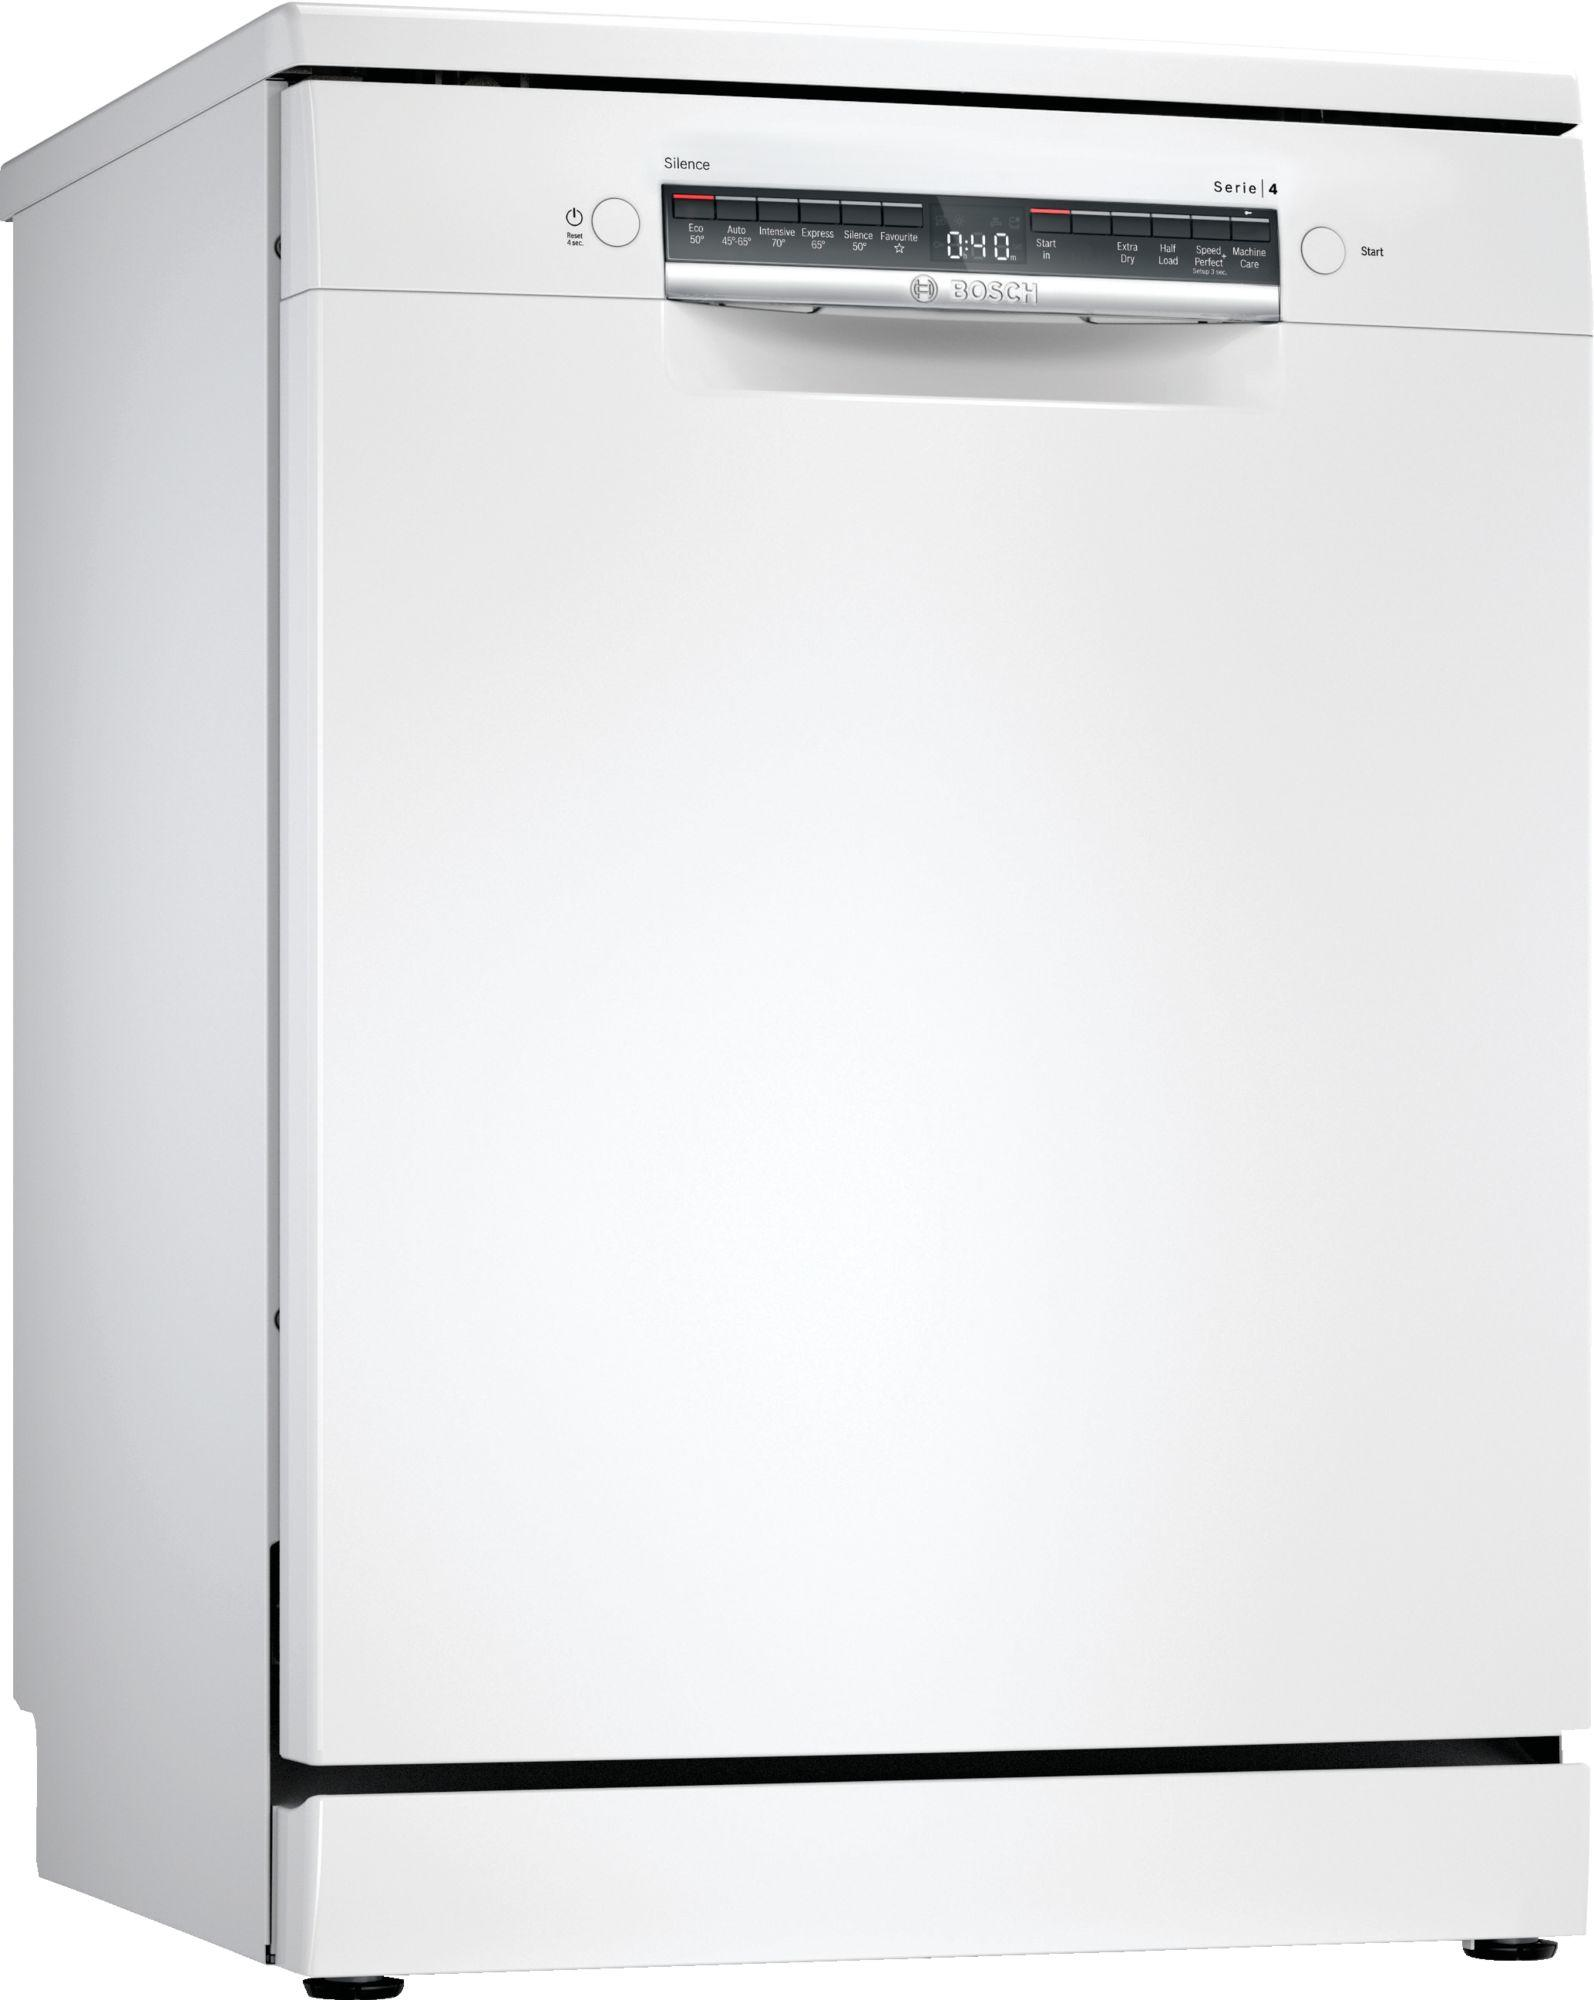 Image of Serie 4 SGS4HAW40G 60cm Standard Dishwasher | White